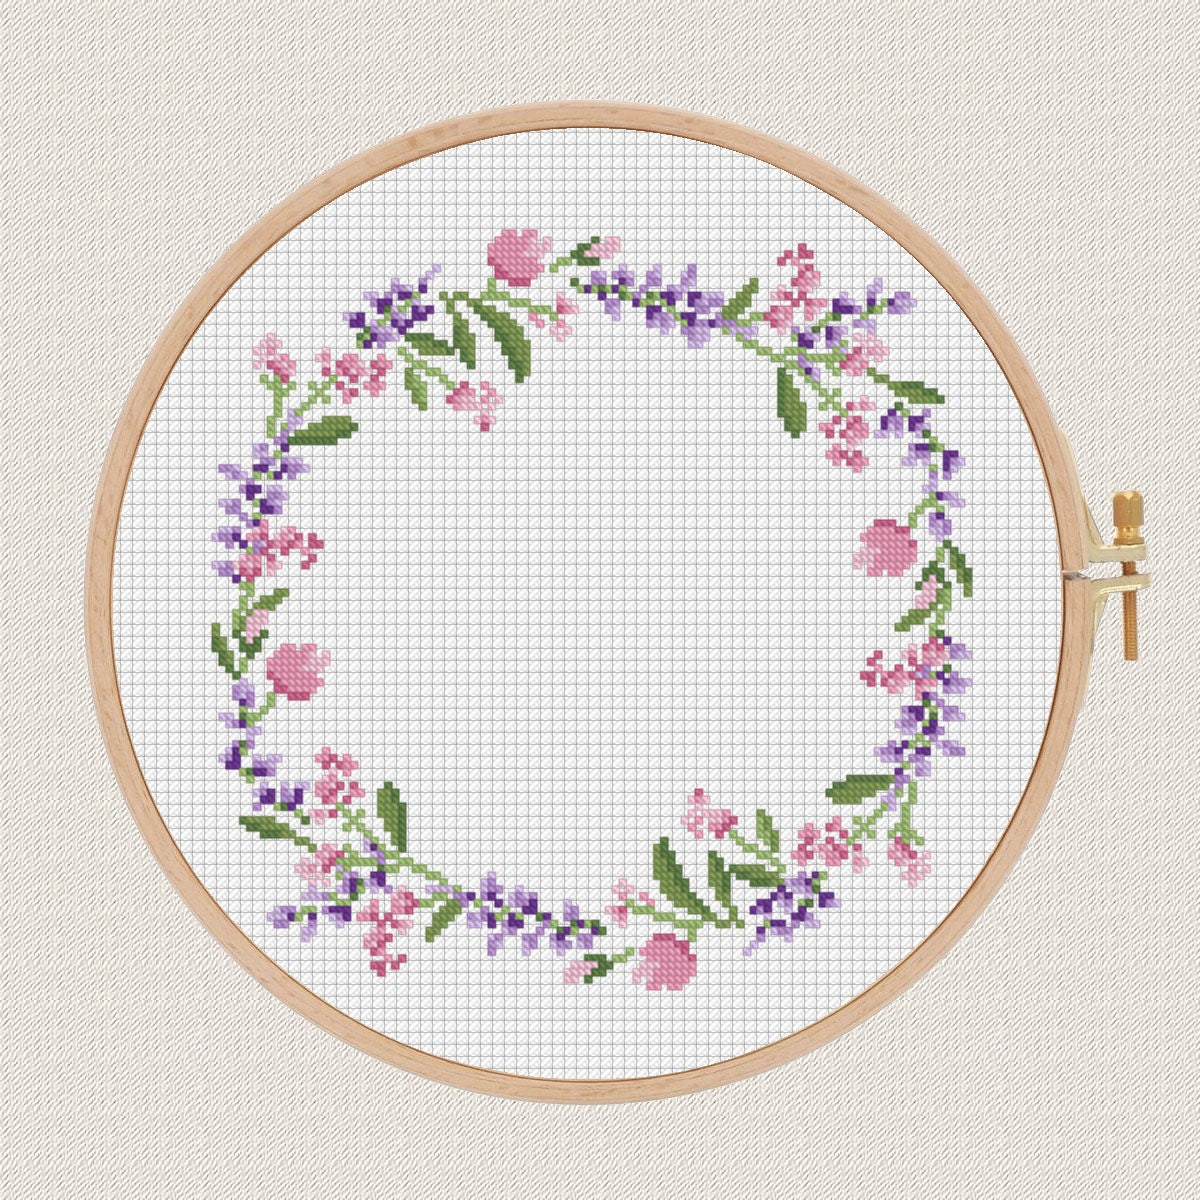 Flowers cross stitch pattern lavender helleborus floral wreath